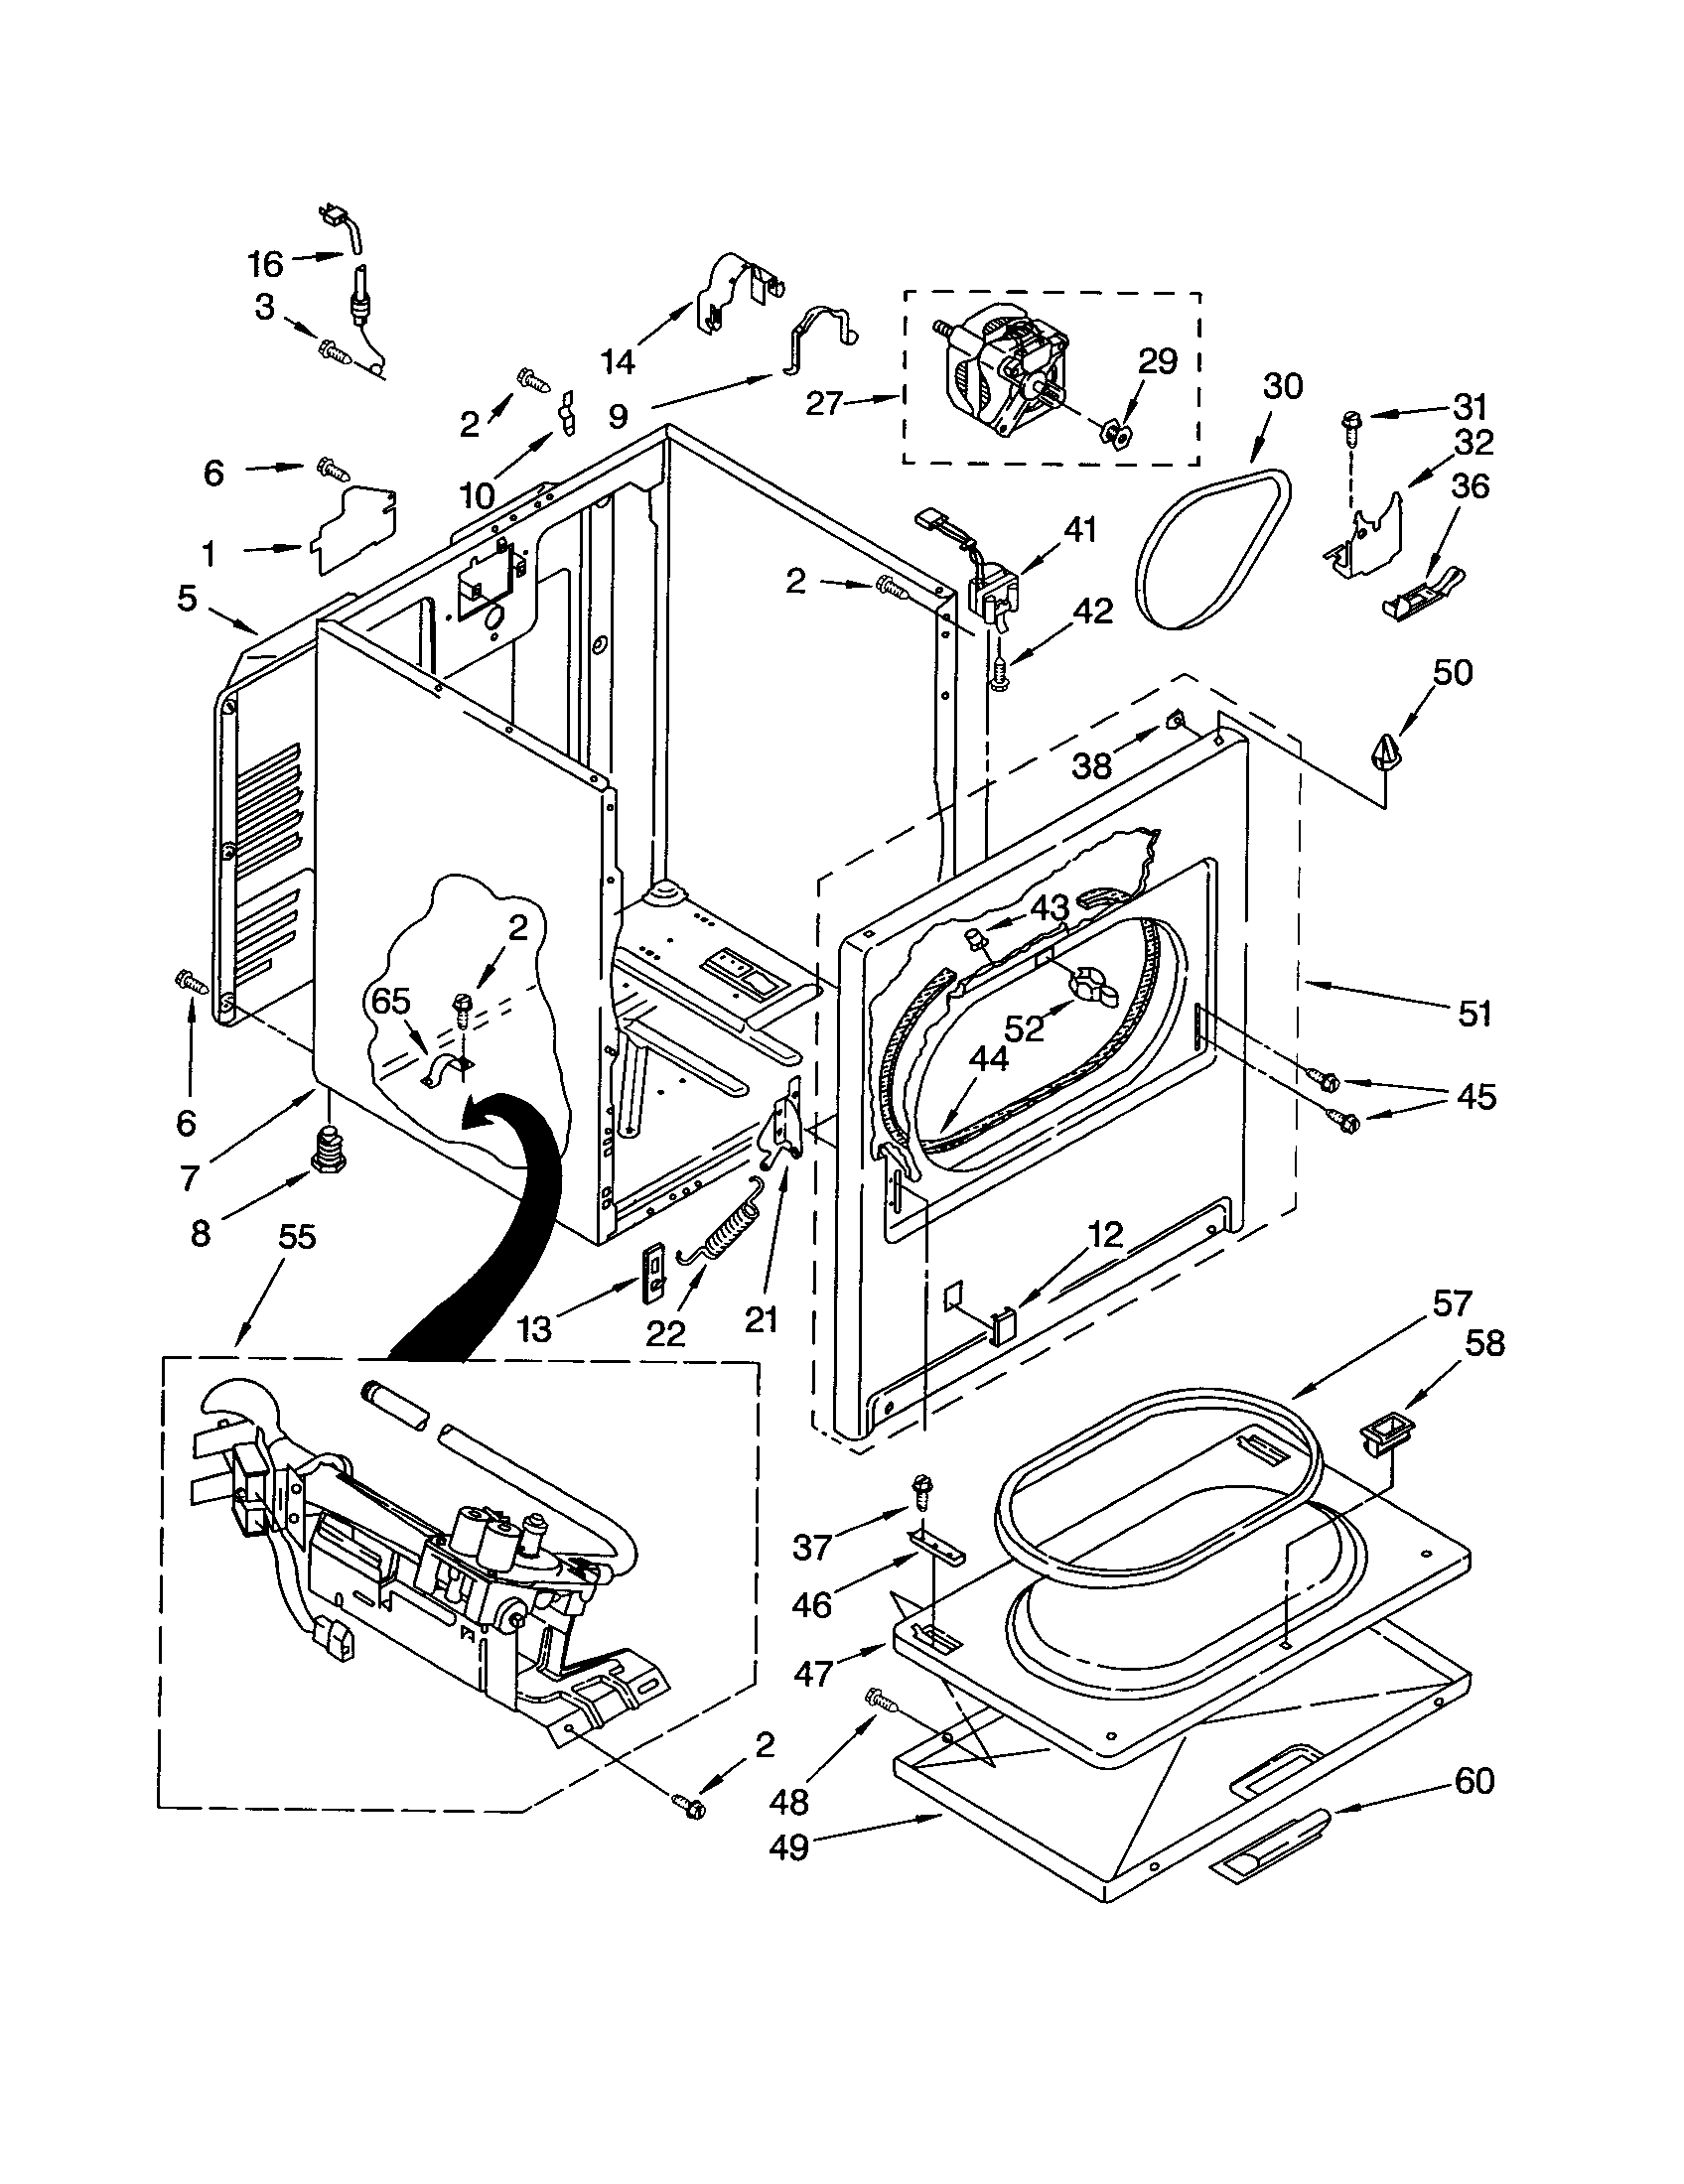 Sandi Pointe – Virtual Library Of Collections pertaining to Kenmore 90 Series Dryer Parts Diagram